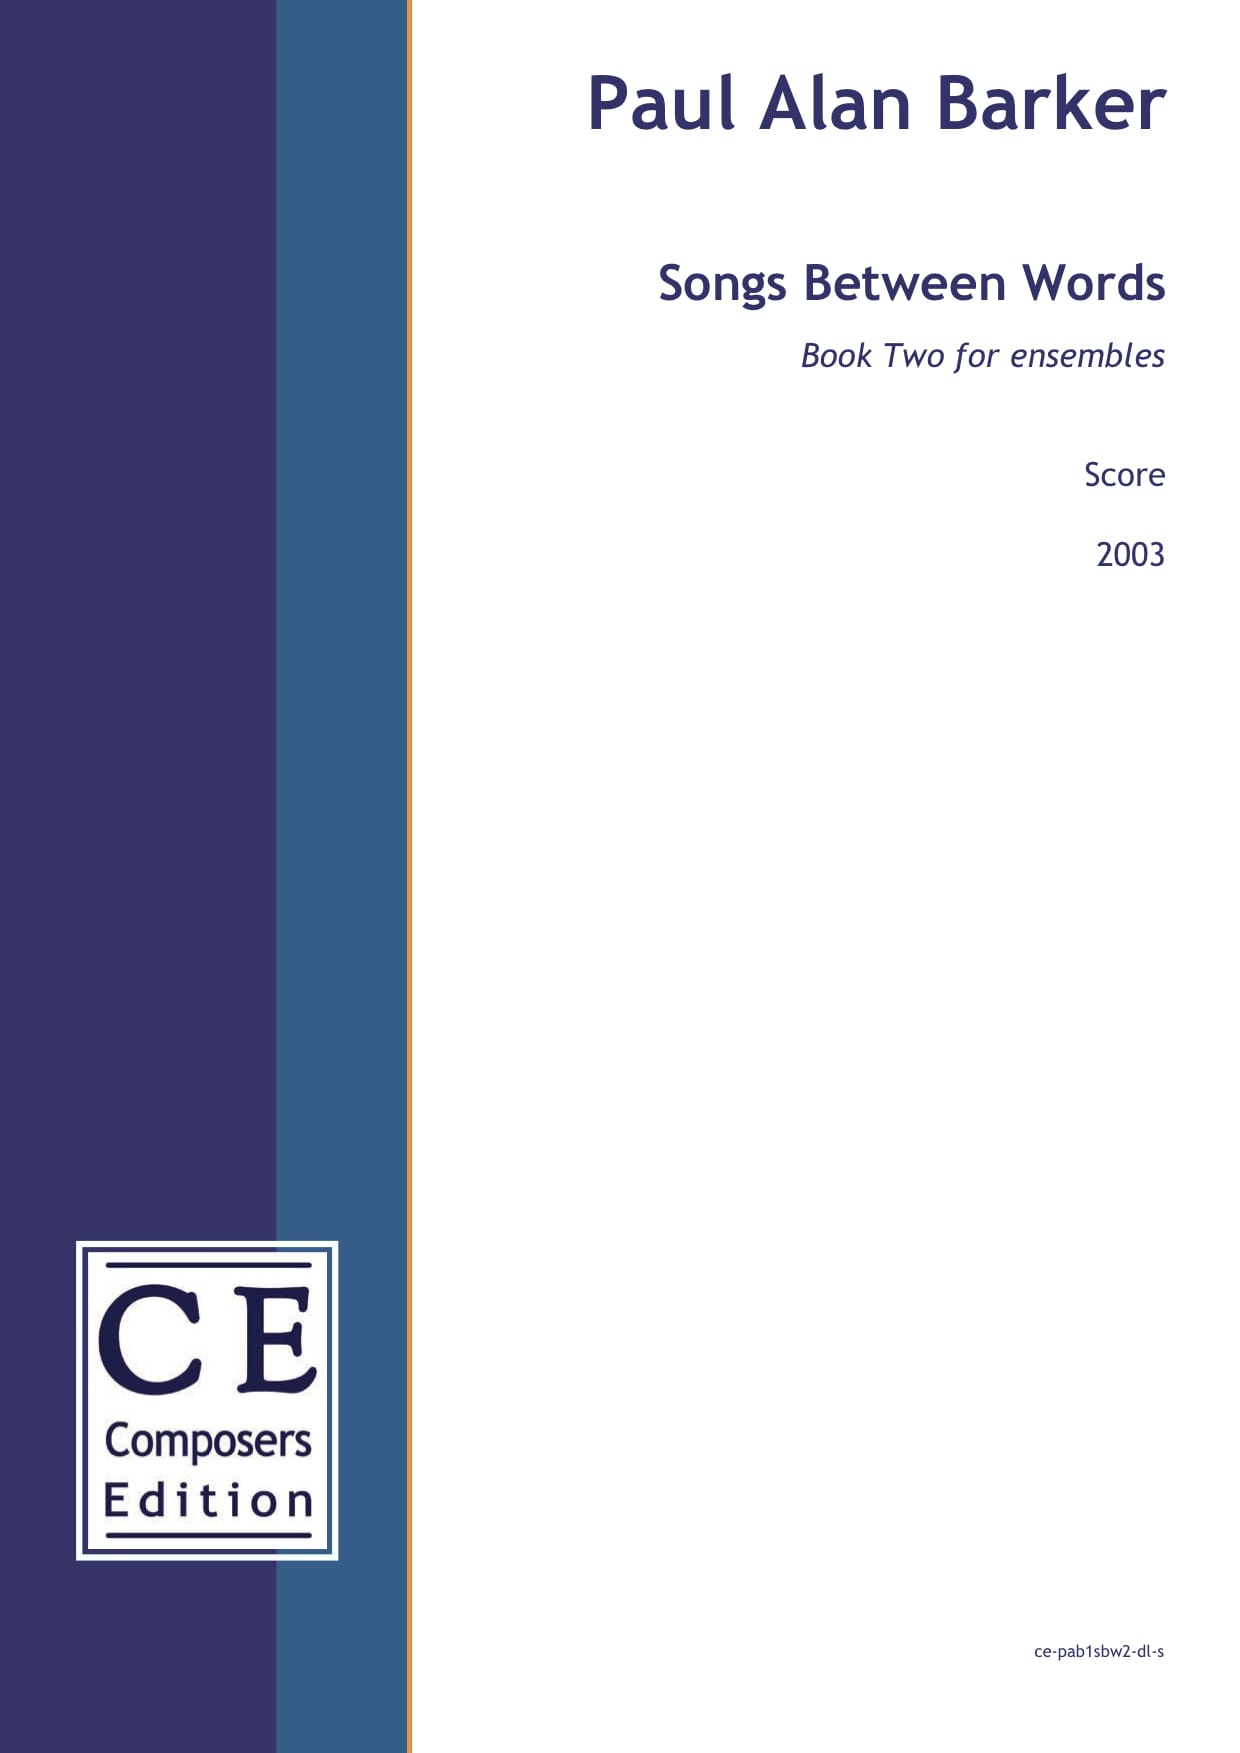 Paul Alan Barker: Songs Between Words (Book Two) Book Two for ensembles